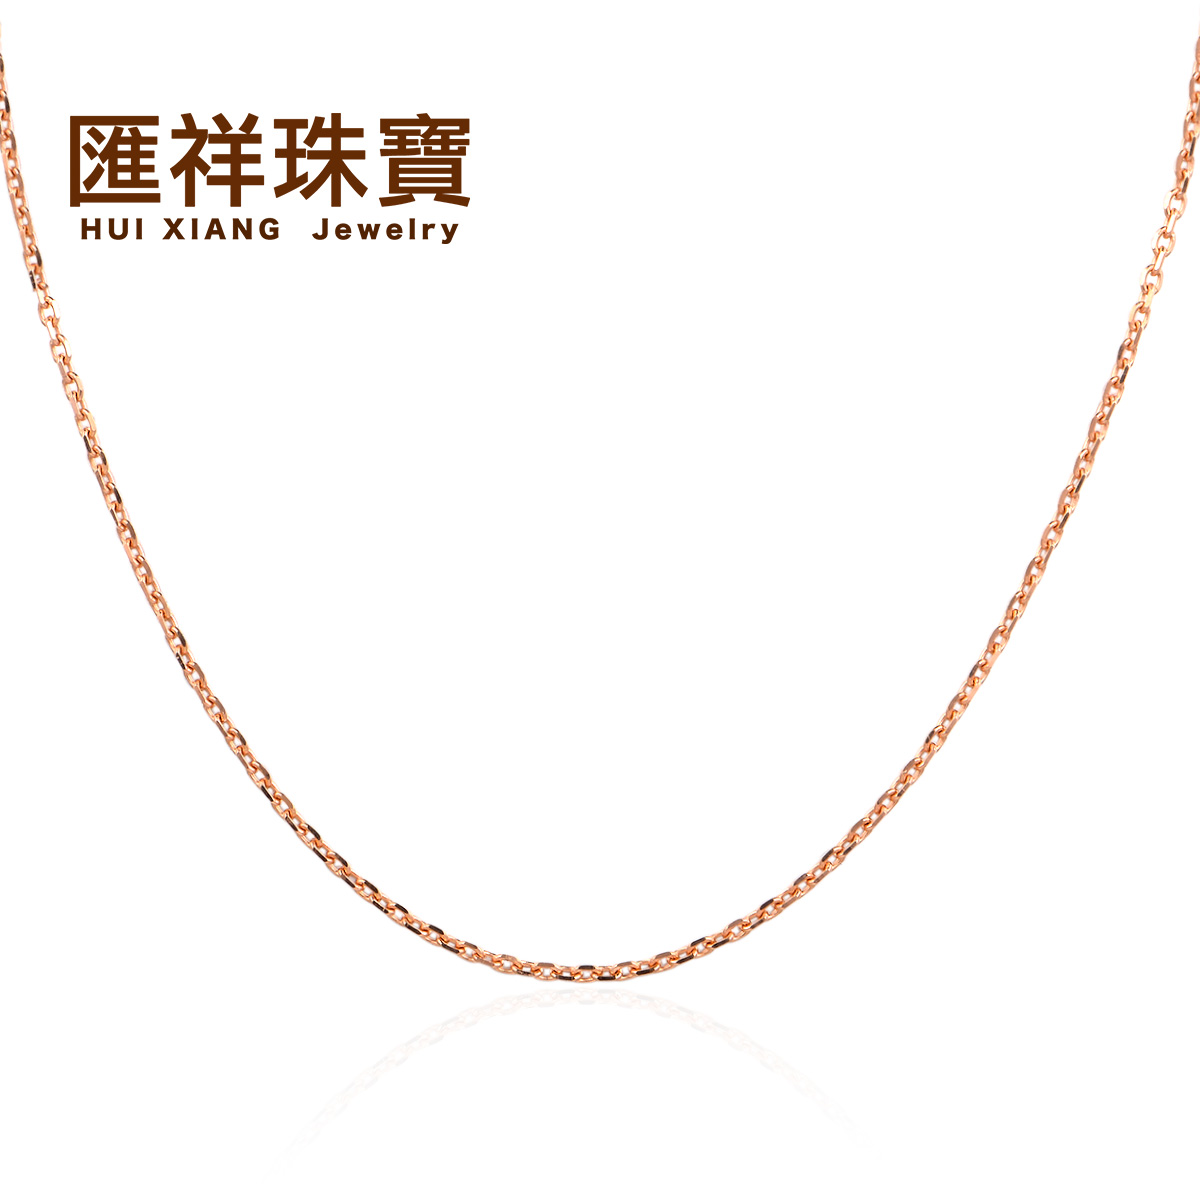 Department of cheung jewelry k gold pearl necklace rose gold color gold cross necklace wild simple clavicle chain free shipping